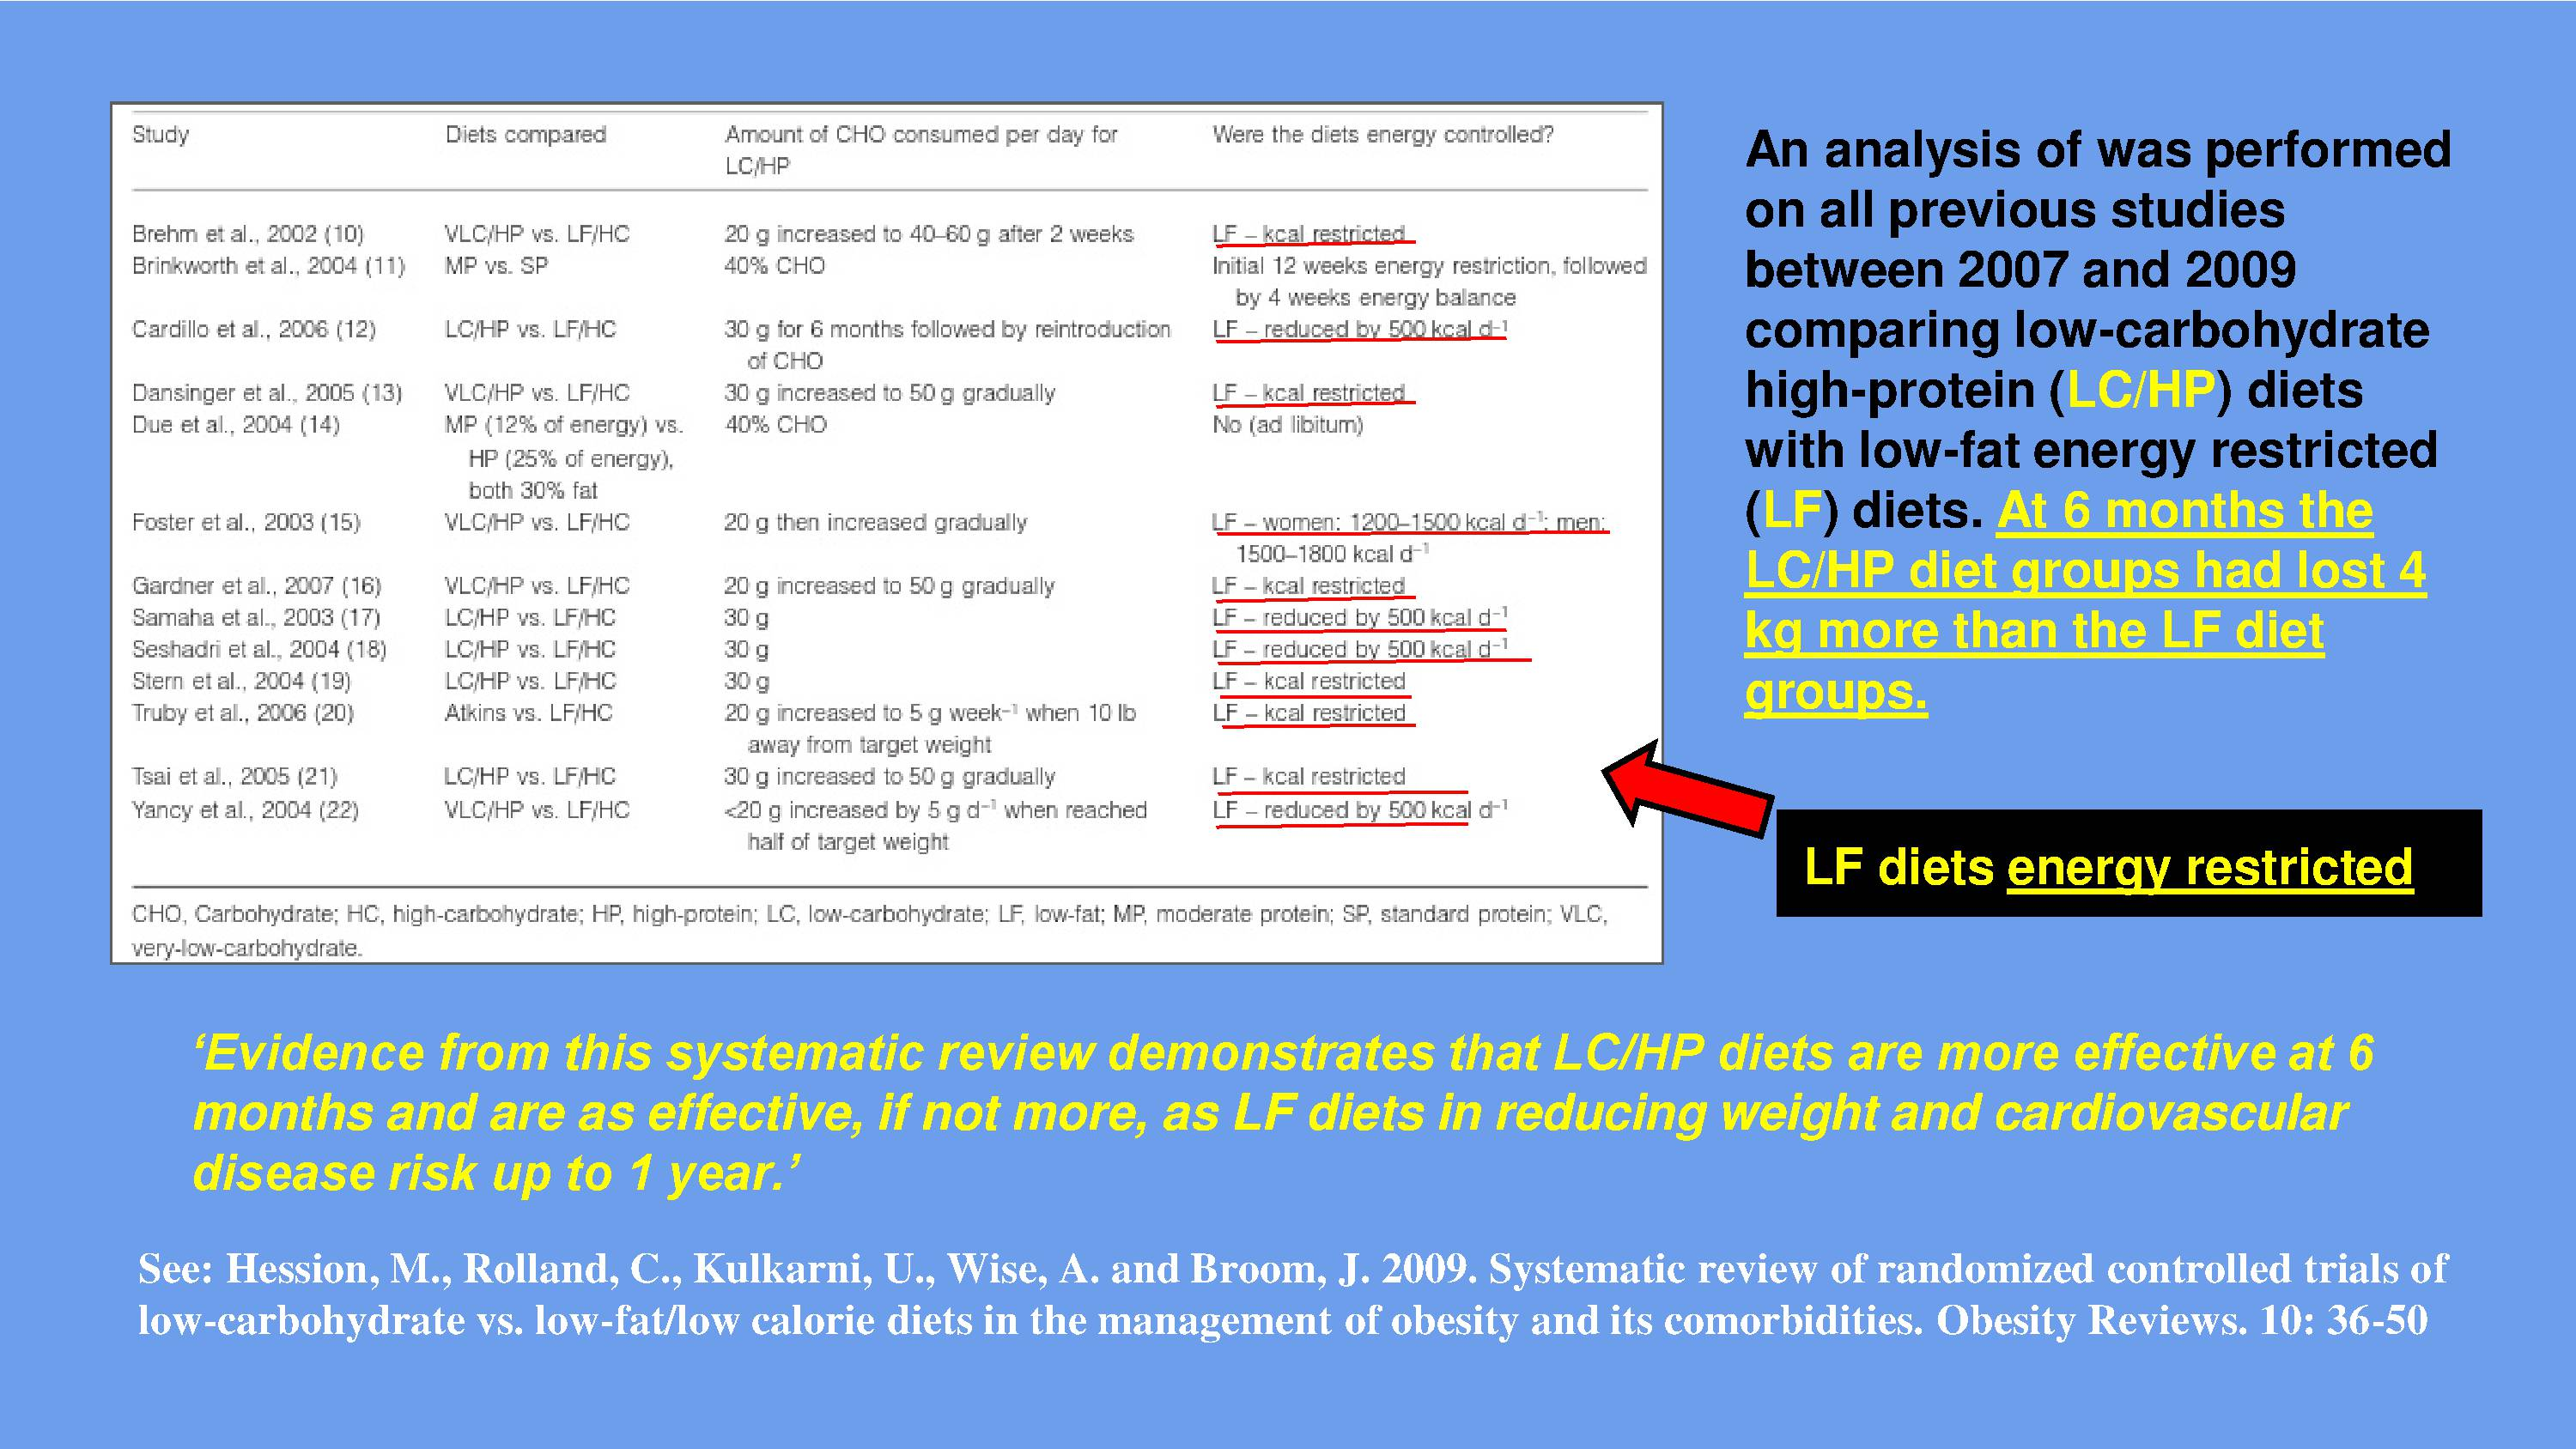 Low Carbohydrate High Protein Diet Vs Fat Energy Restricted